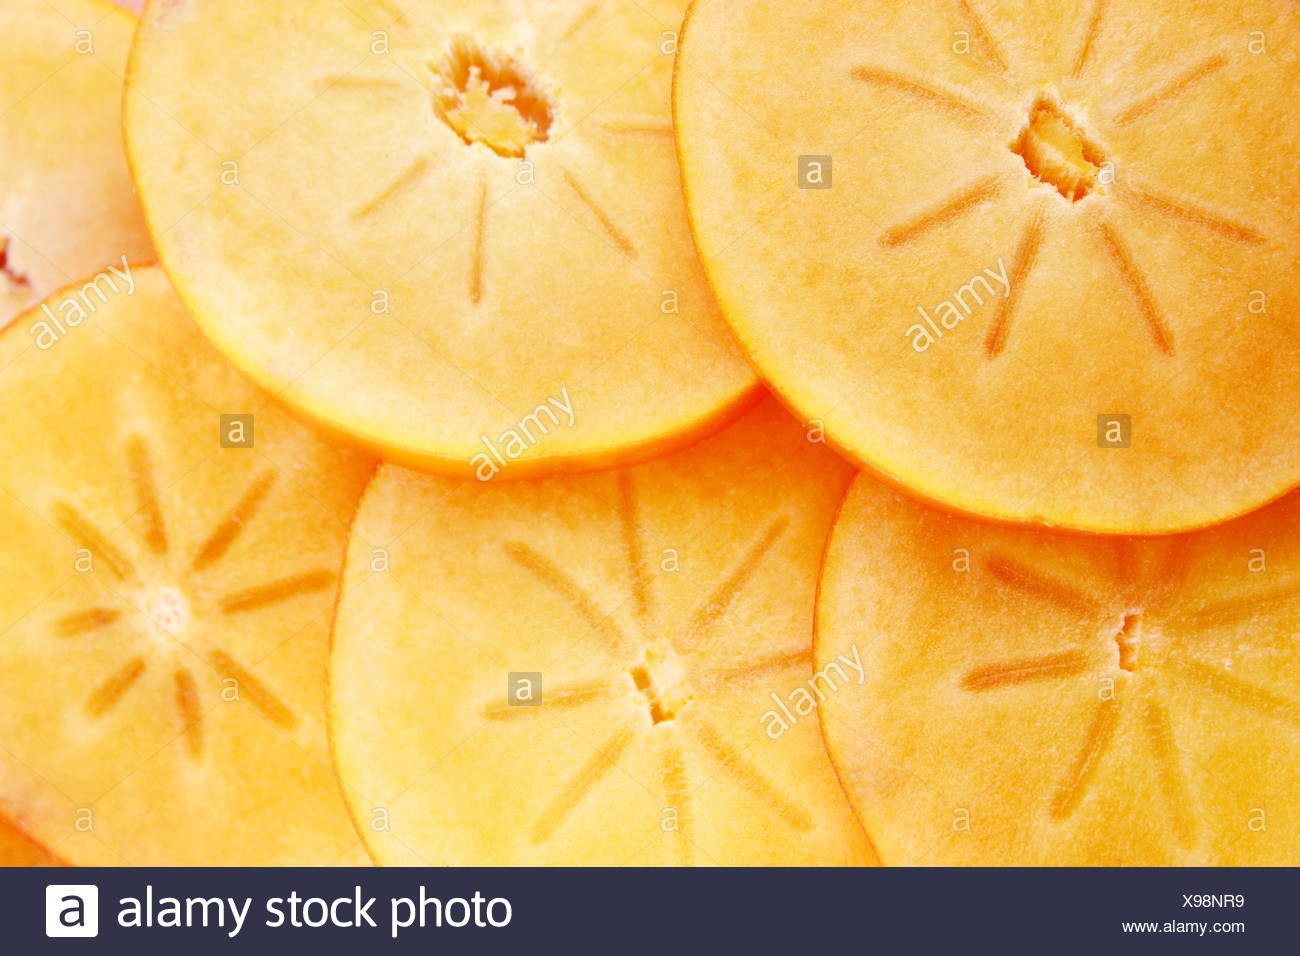 persimmon fruit slices - Stock Image